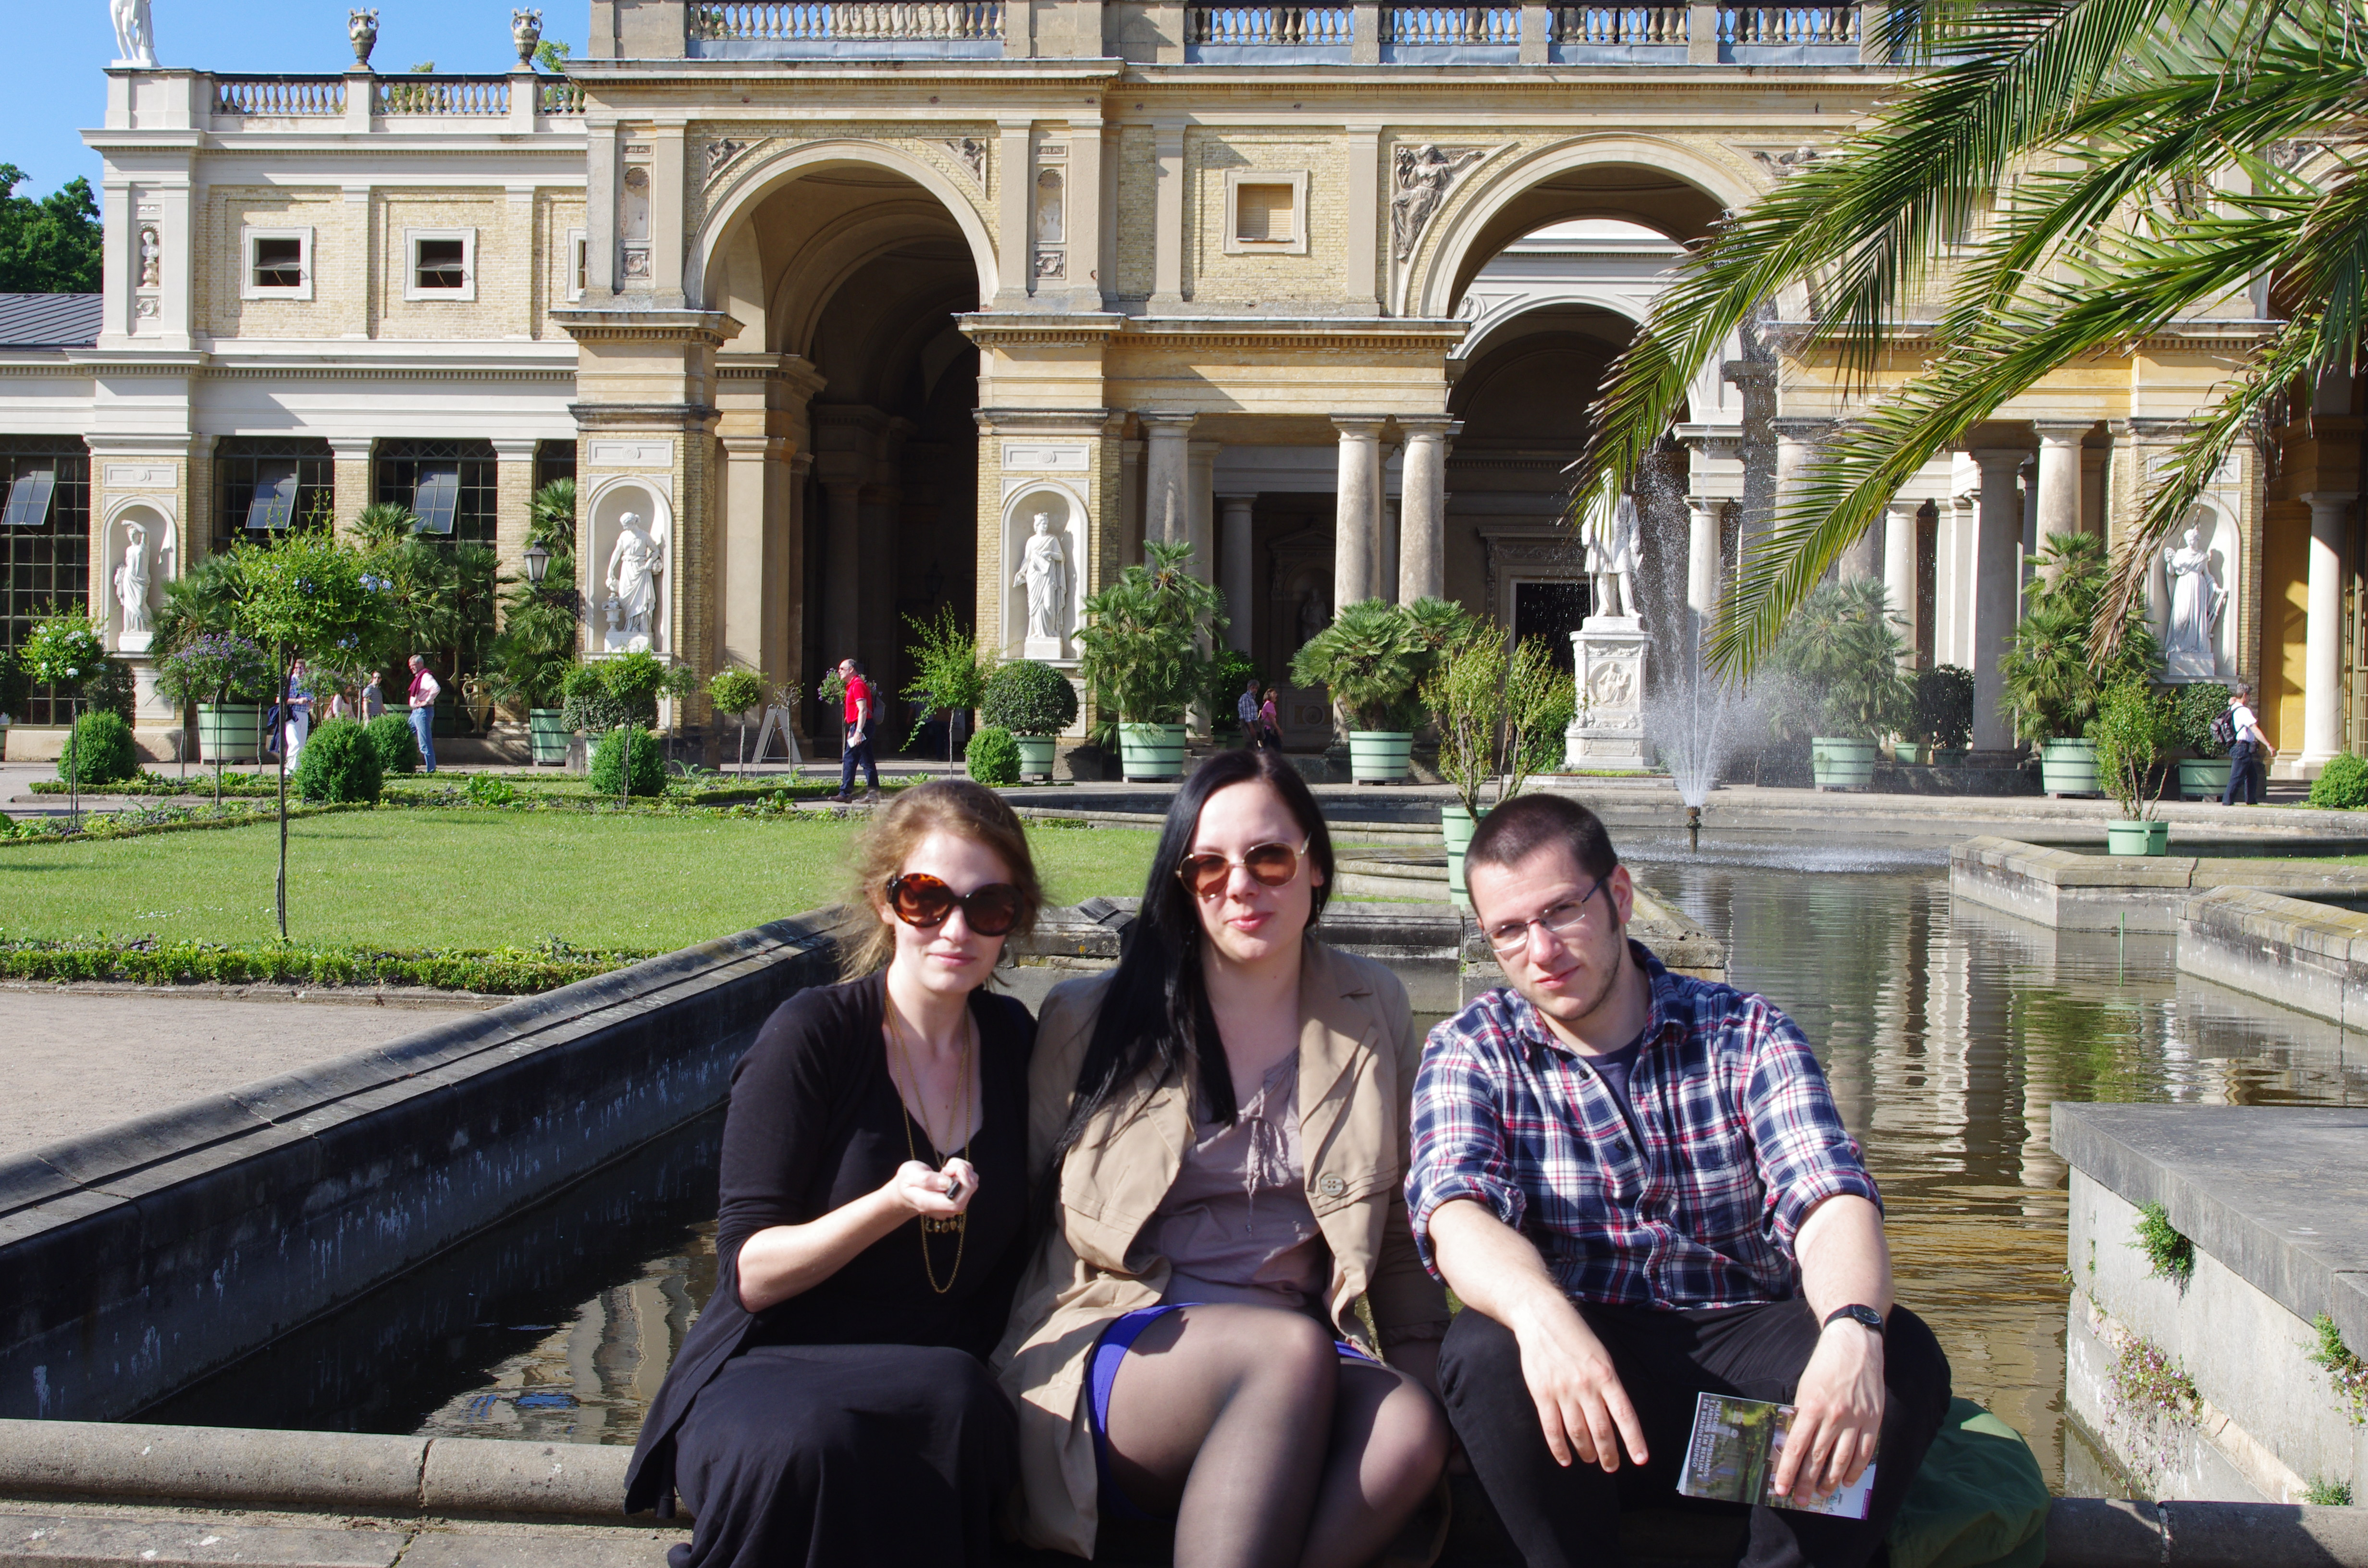 Palaces and Parks of Potsdam and Berlin - Germany By katherine brownell